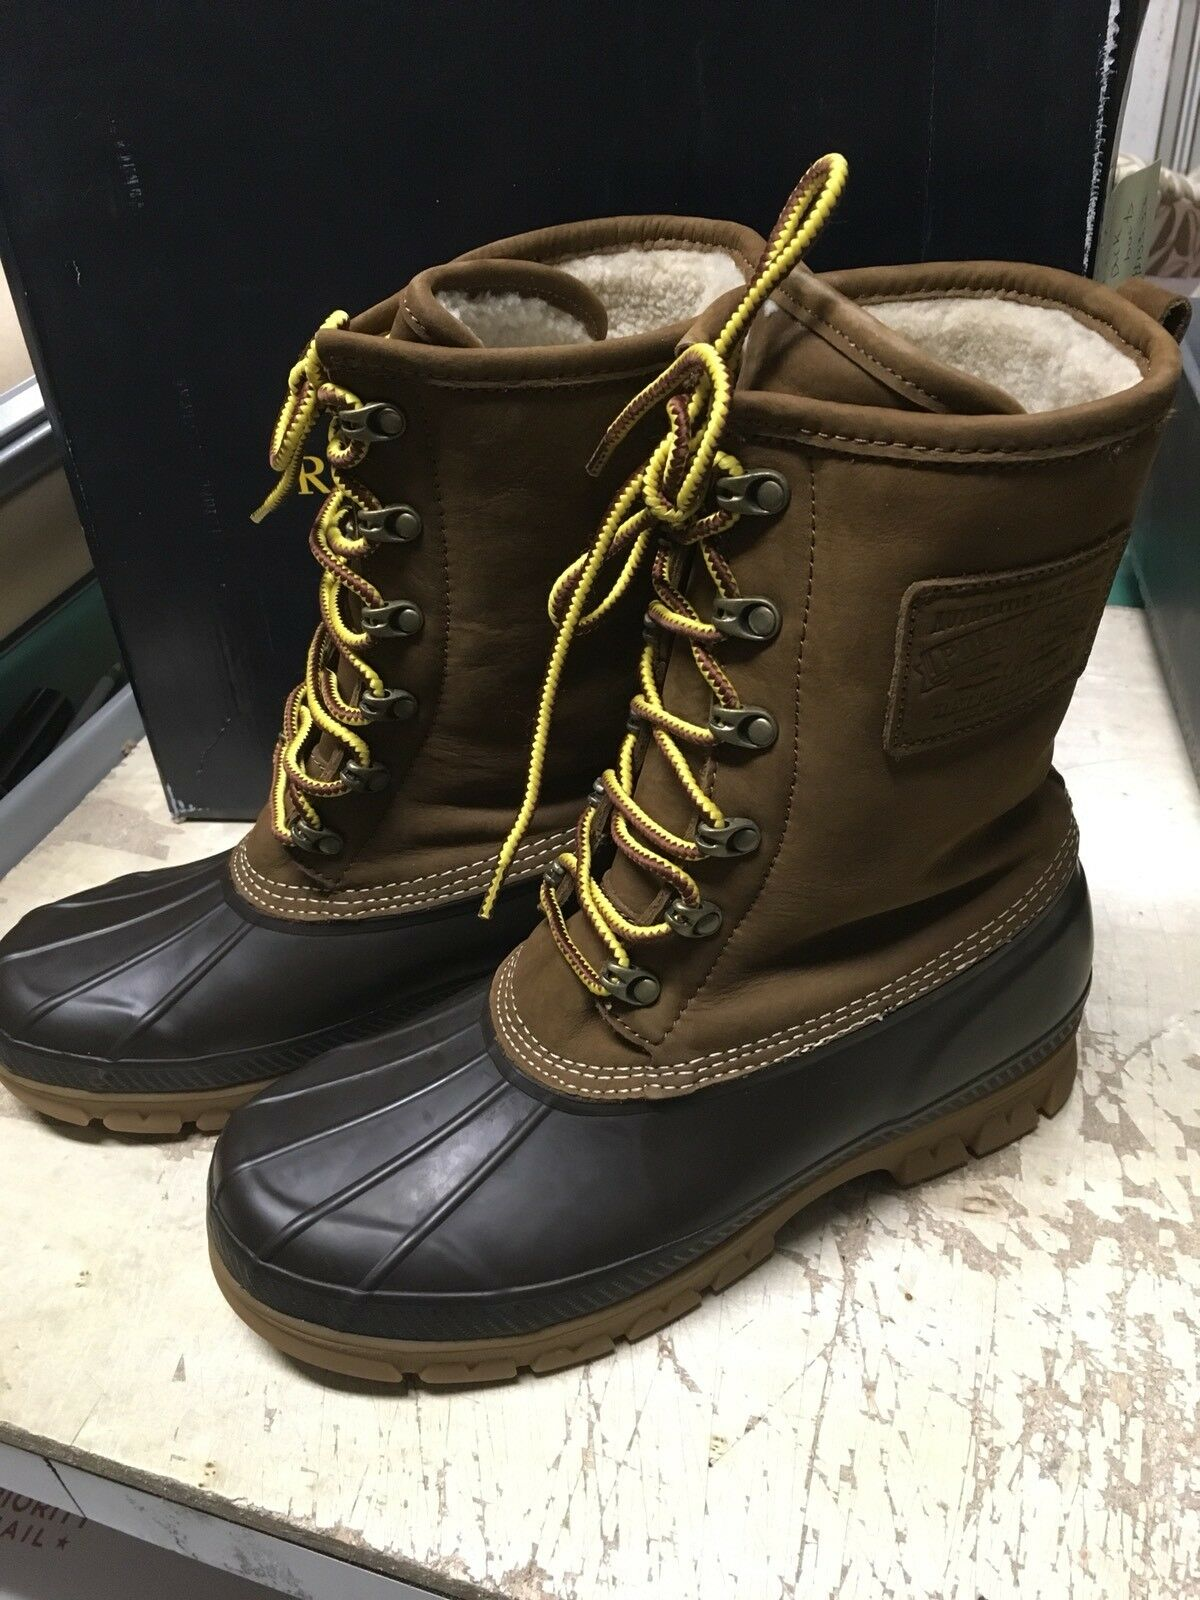 DS MENS Polo Ralph Lauren Romford Boot SHEARLING LINED SNUFF NATURAL SZ 9